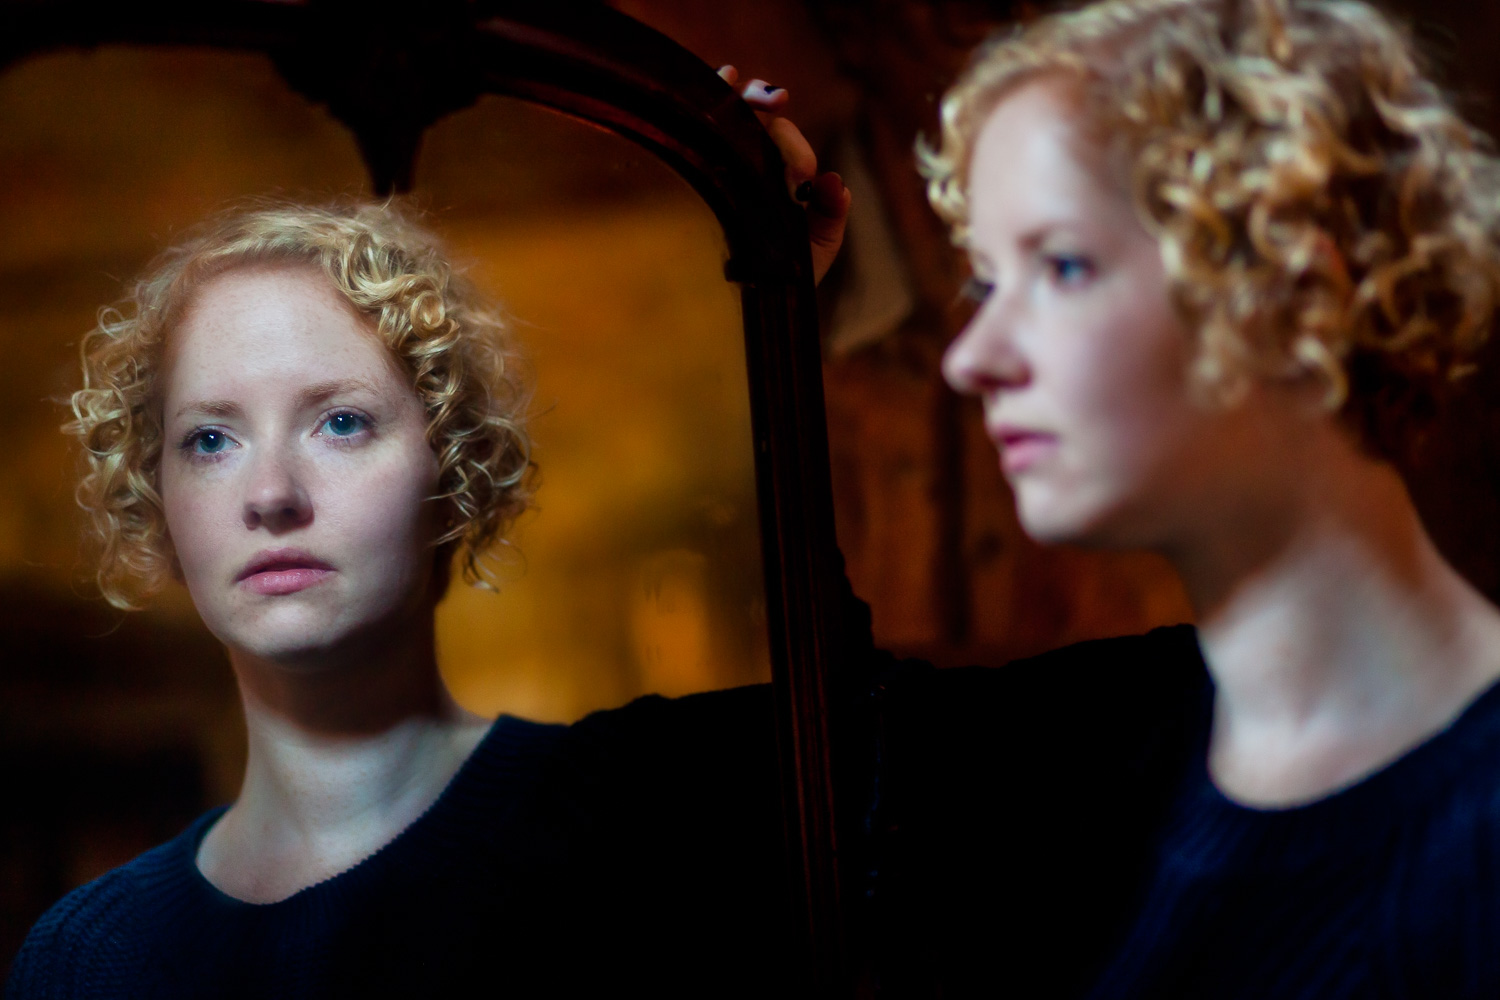 An image with an eerie painterly effect was achieved by photographing this young woman's reflection under a mixture of daylight and incandescent lighting.